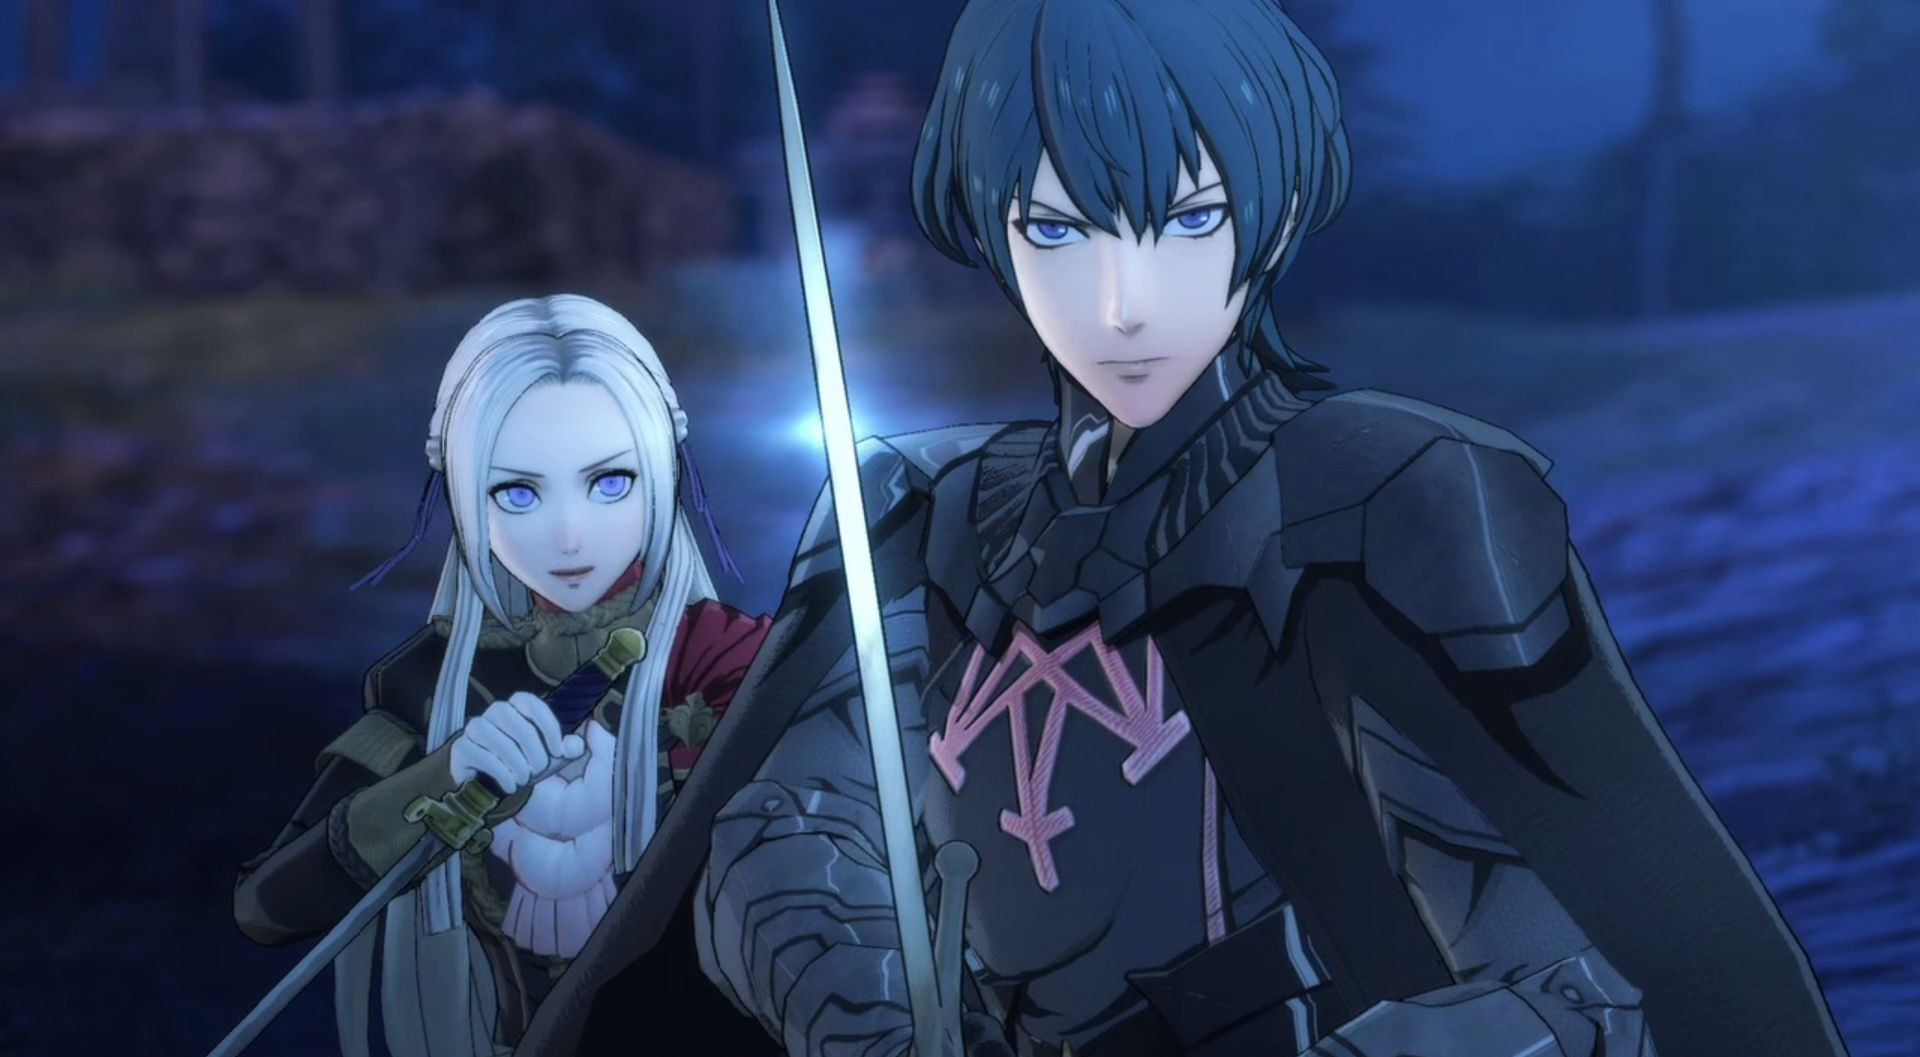 Fire Emblem: Three Houses will get 'an even harder mode' as free DLC later this year screenshot